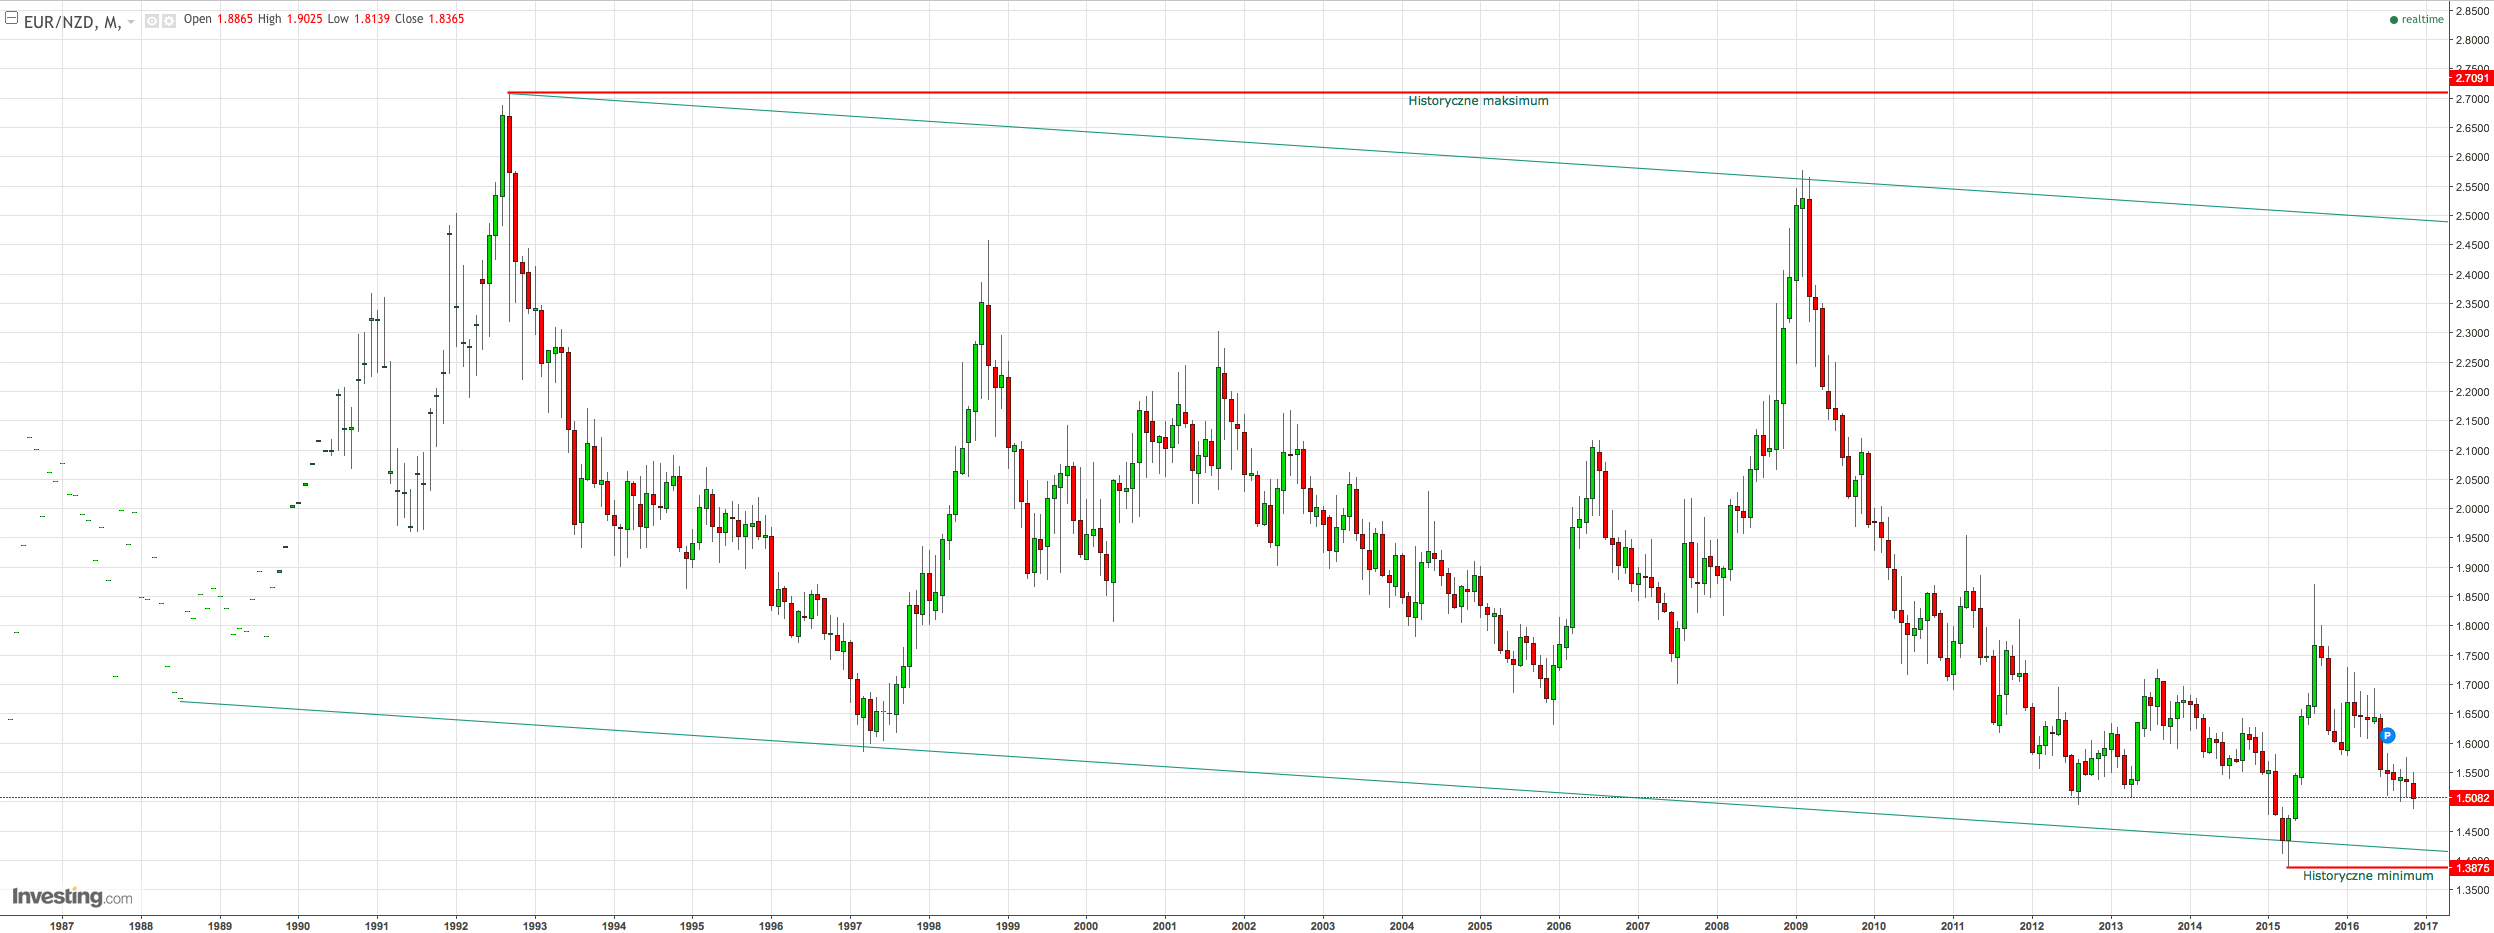 EURNZD Monthly